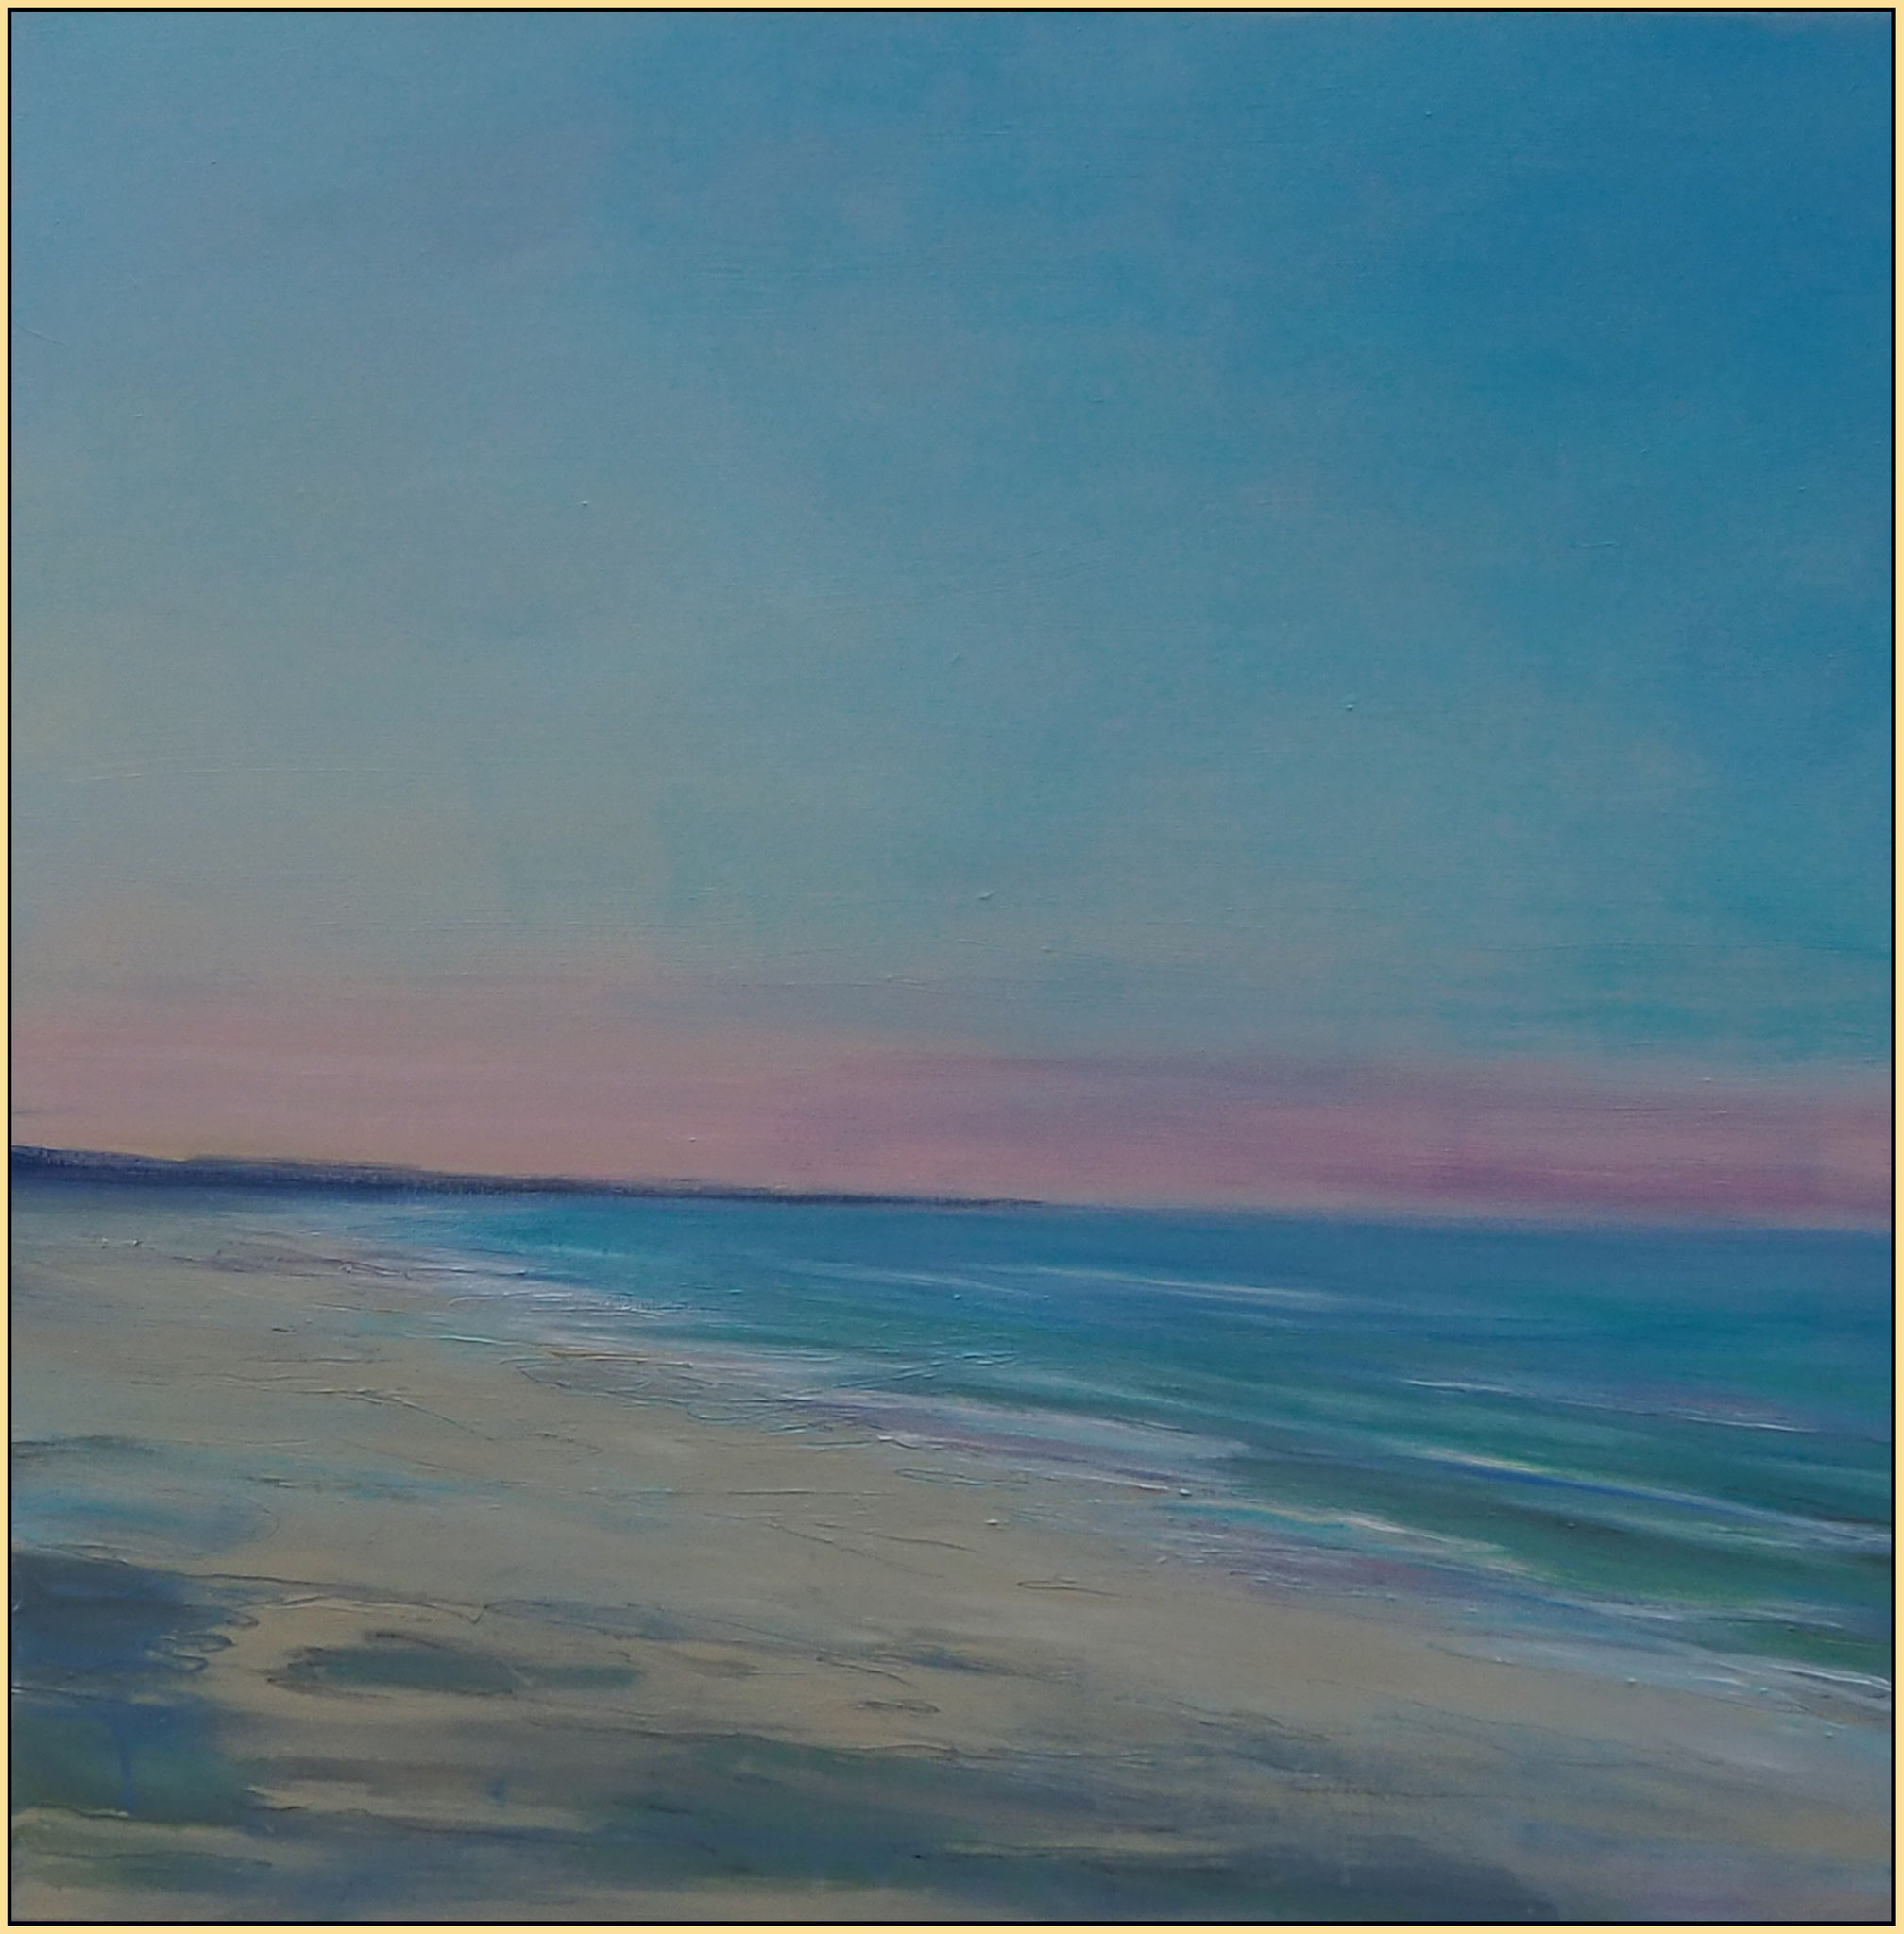 December beach 2020 II acryl on canvas  80 cm / 80 cm